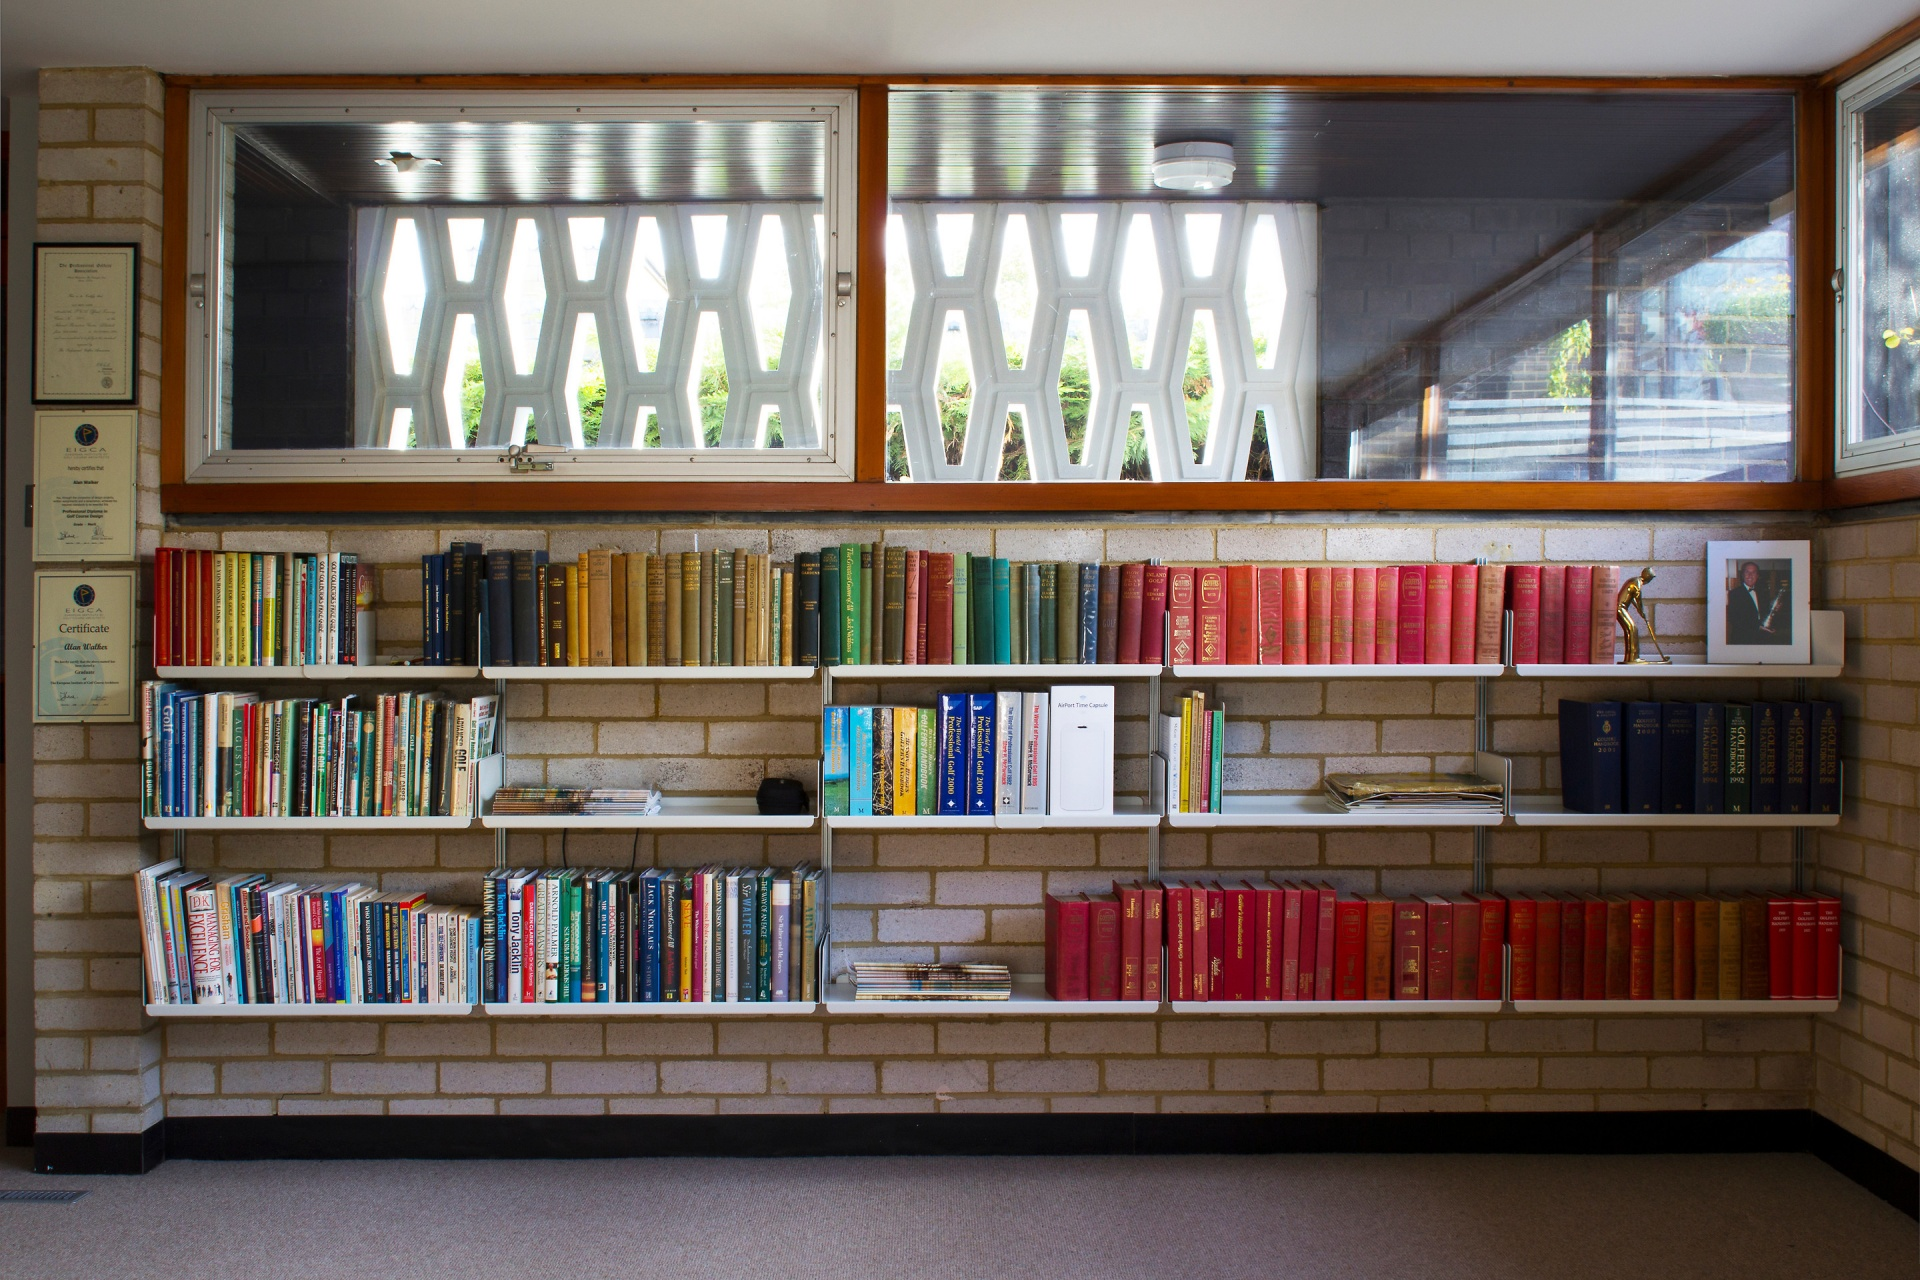 A bookish bunker with the 606 Universal Shelving System wall-mounted on exposed brickwork. Apt.